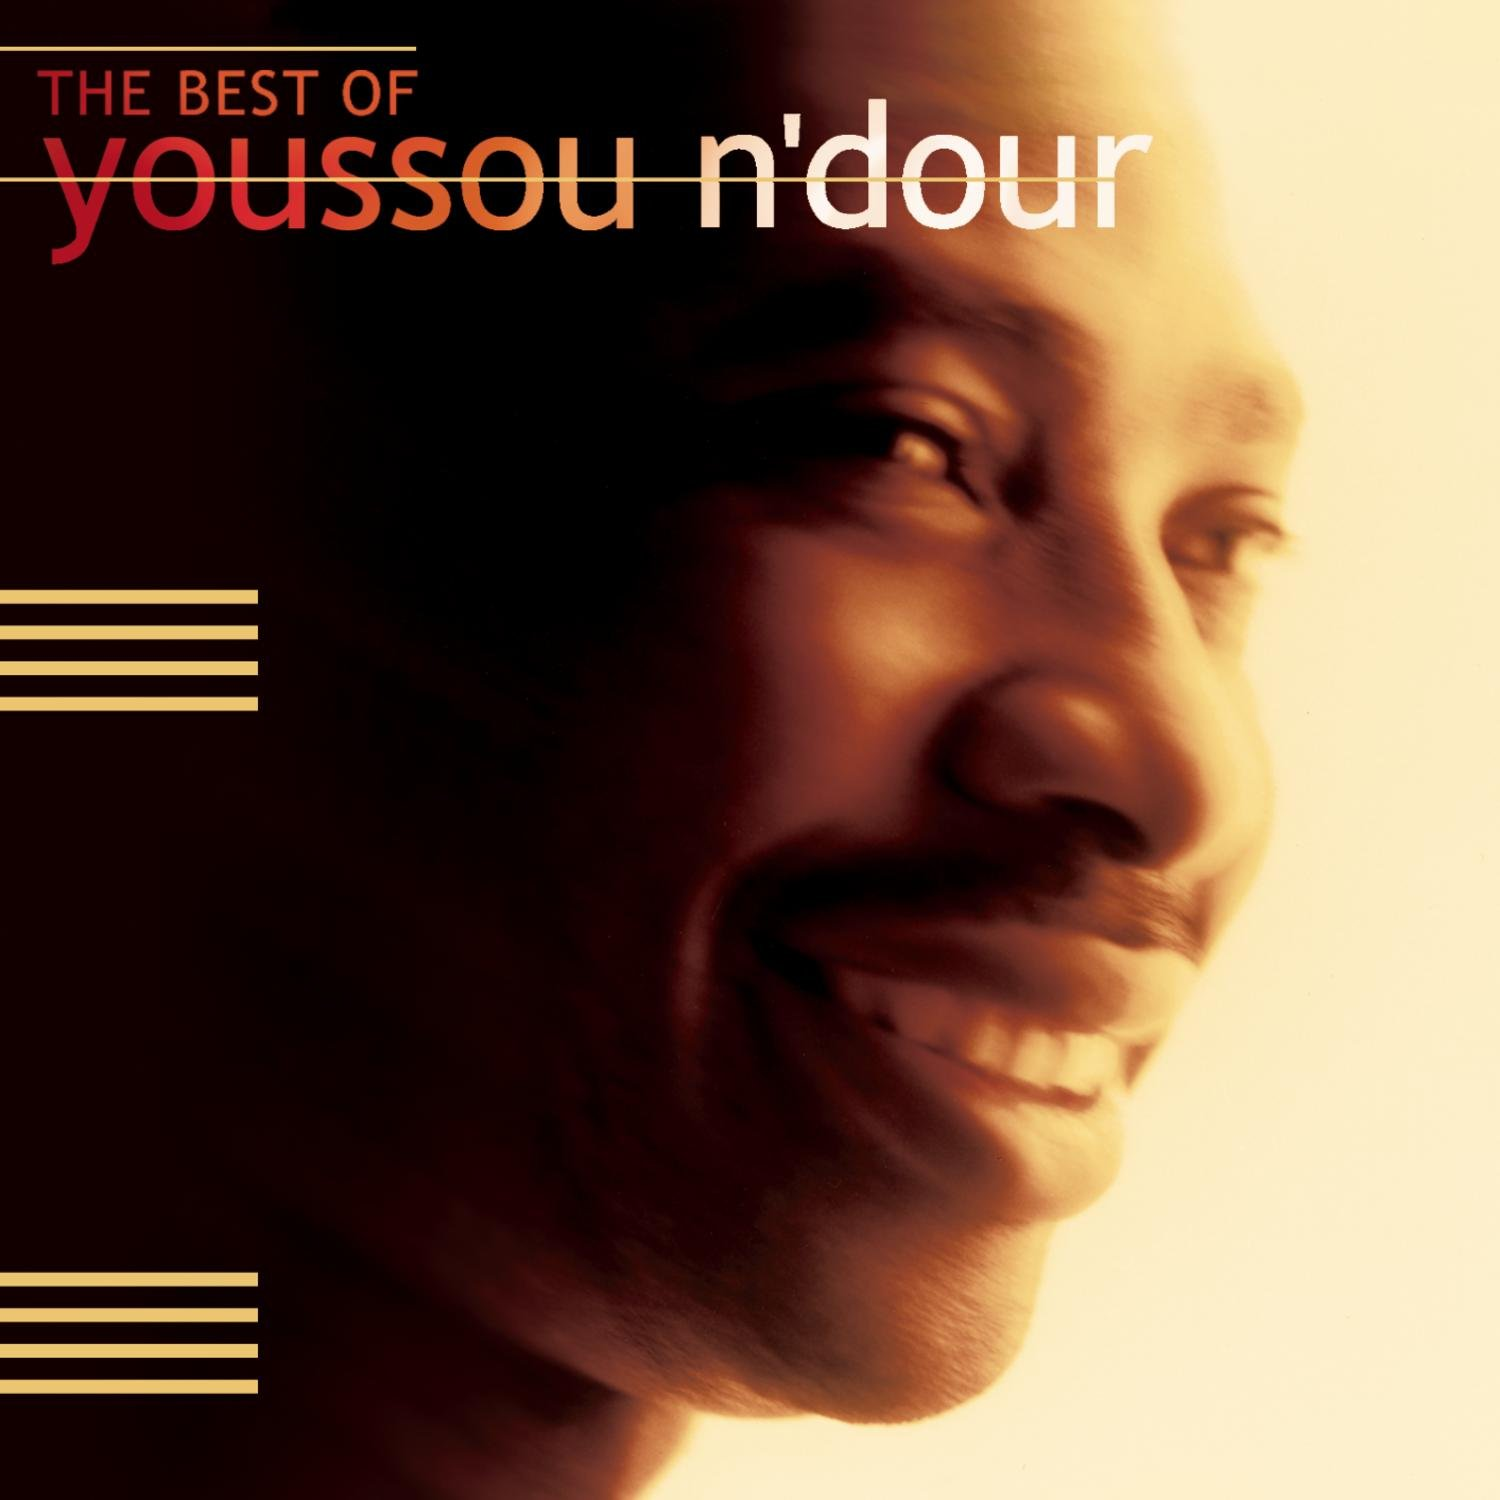 Youssou N'Dour - 7 Seconds: The Best Of Youssou N'Dour - Amazon ...Youssou N'Dour - 7 Seconds: The Best Of Youssou N'Dour - Amazon.com Music